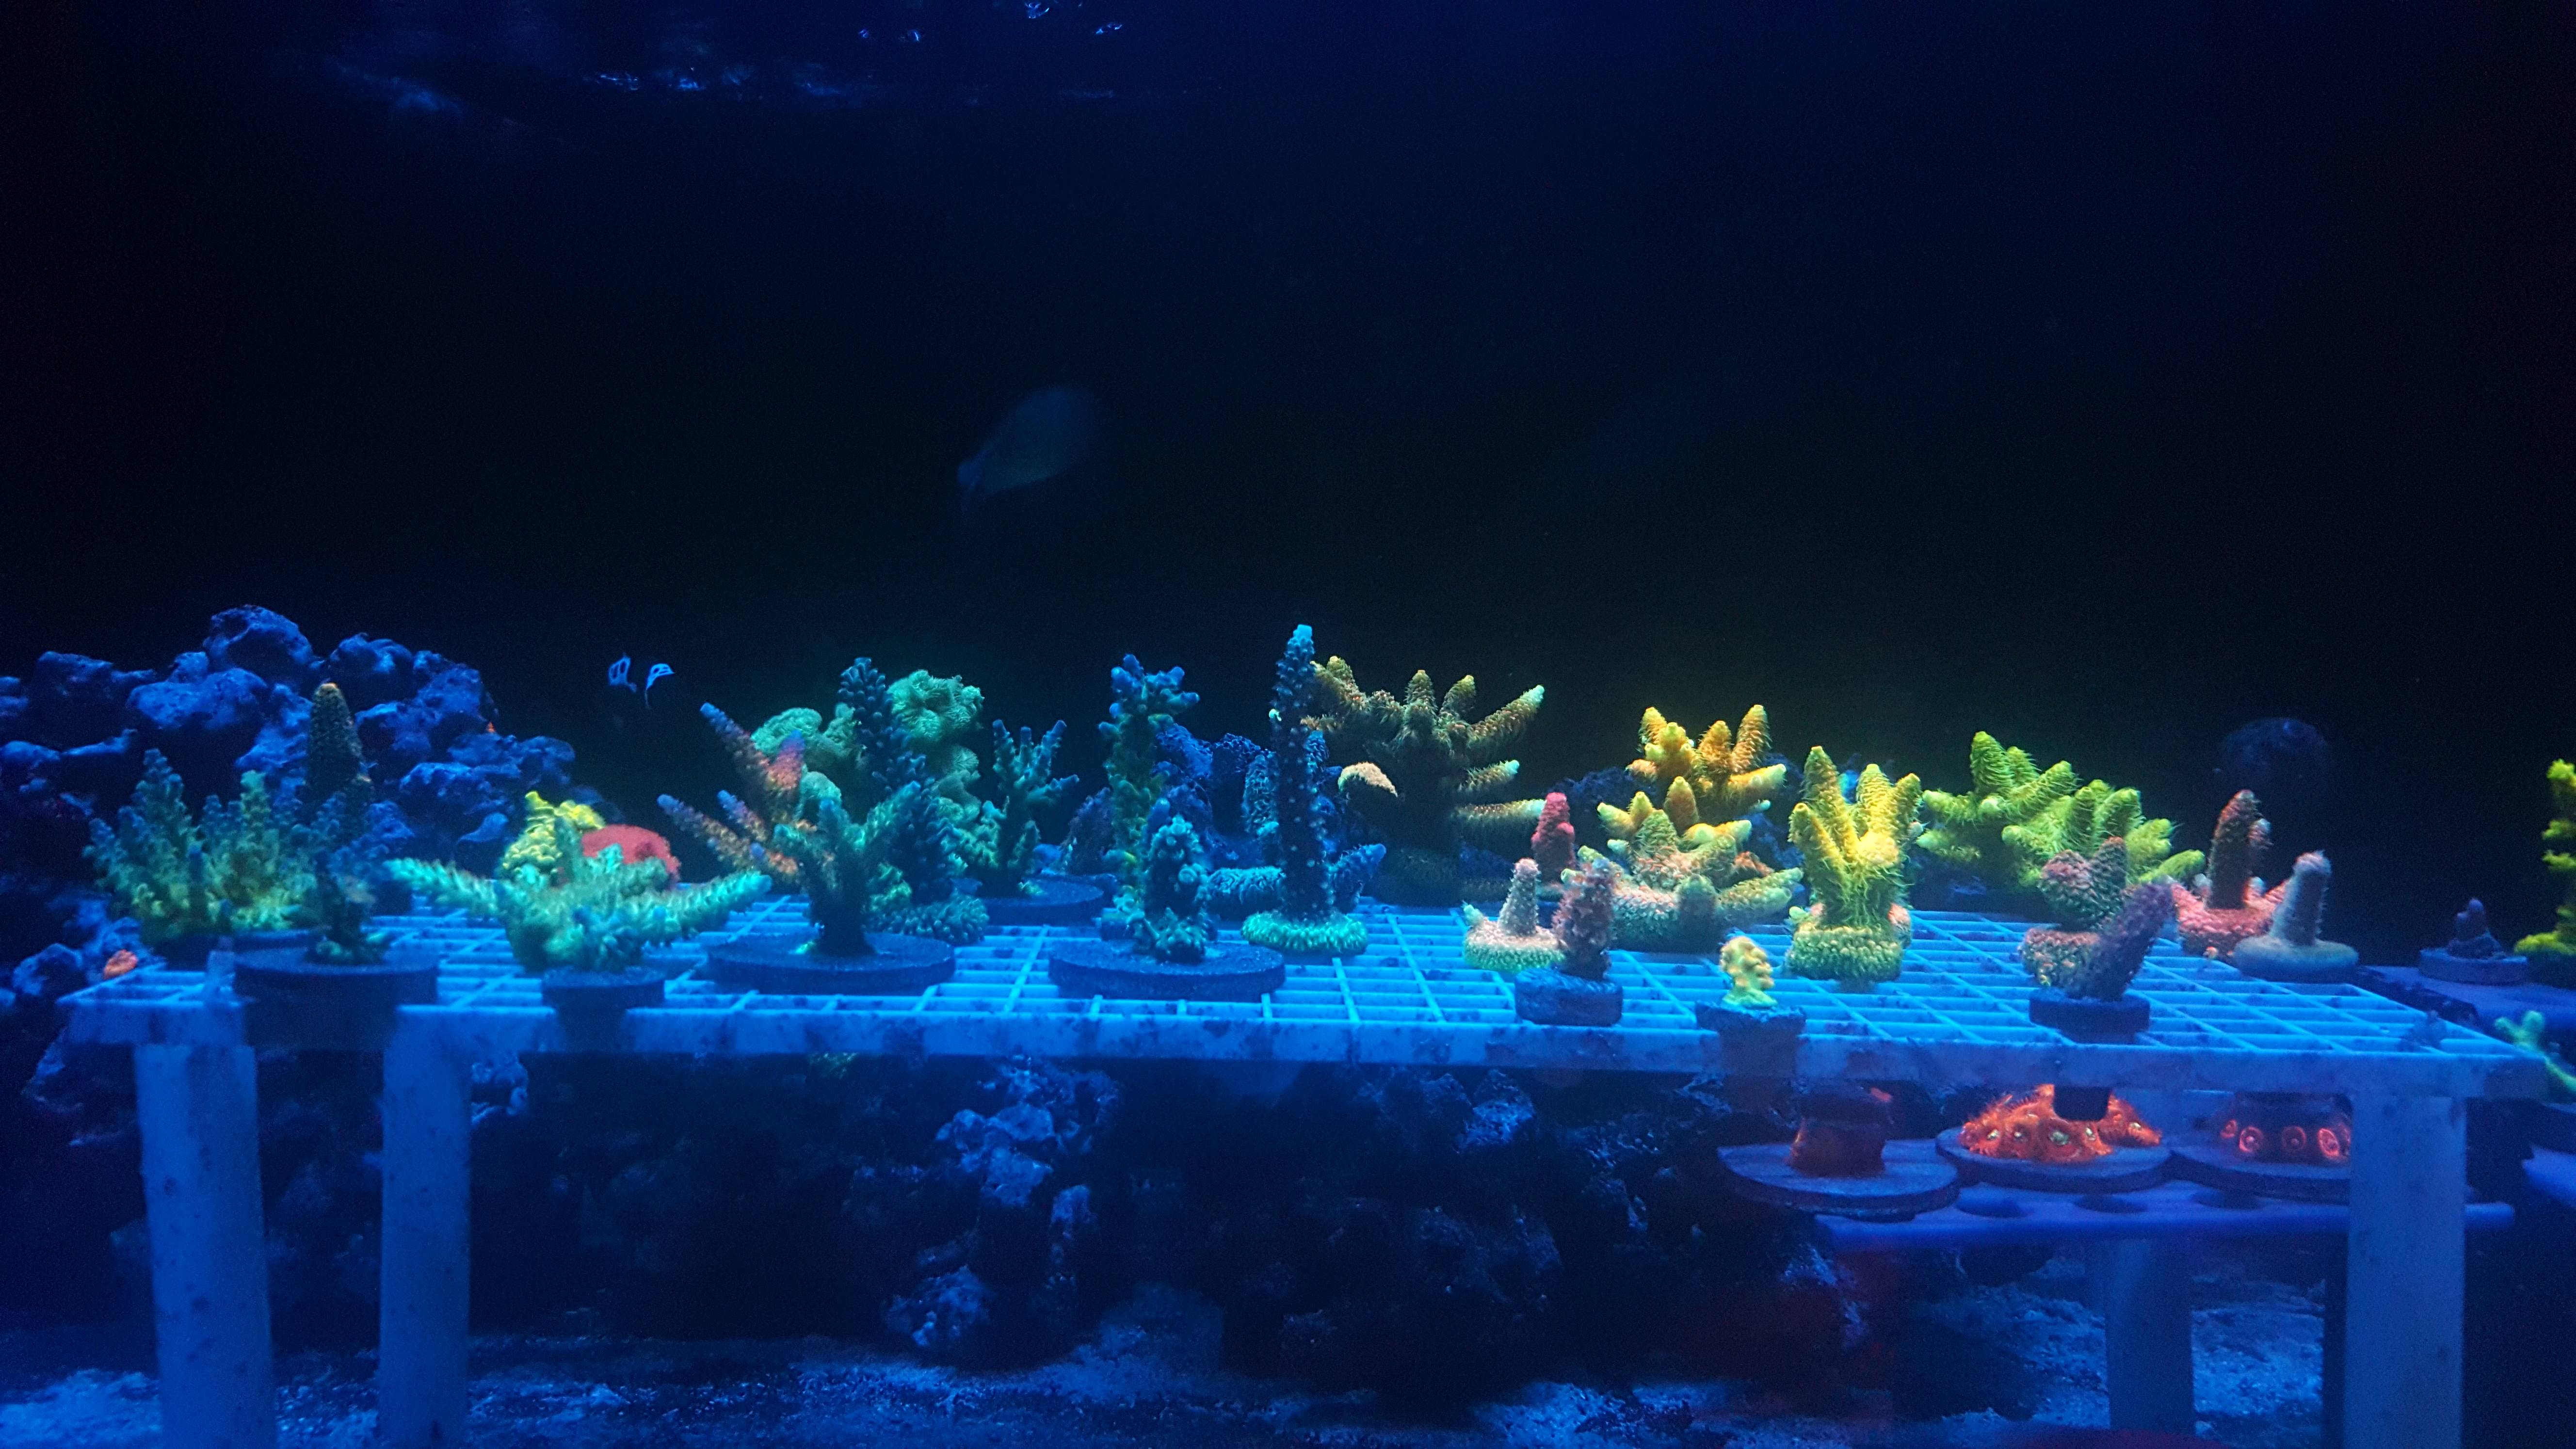 Freshwater aquarium fish boise idaho - Here S A Picture For Reference